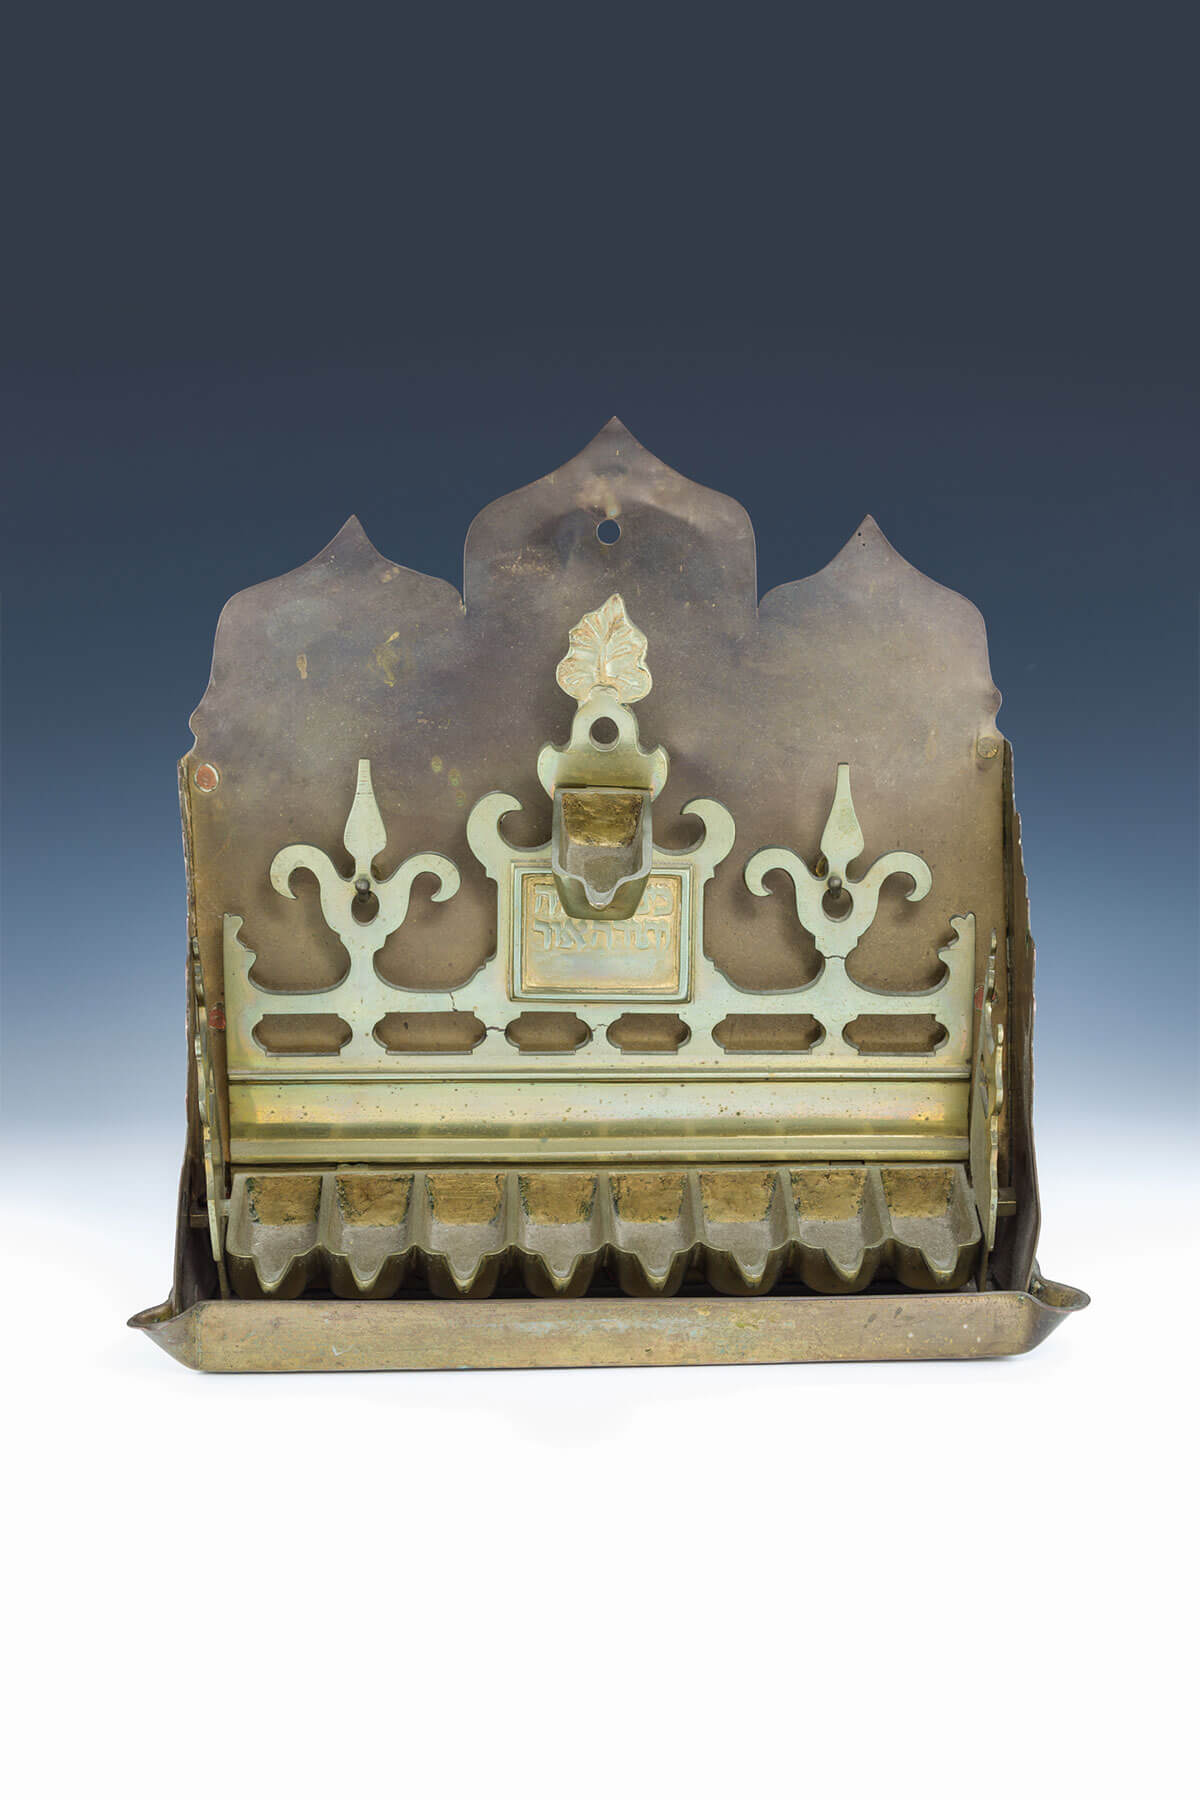 96. A Large Brass Chanukah Lamp